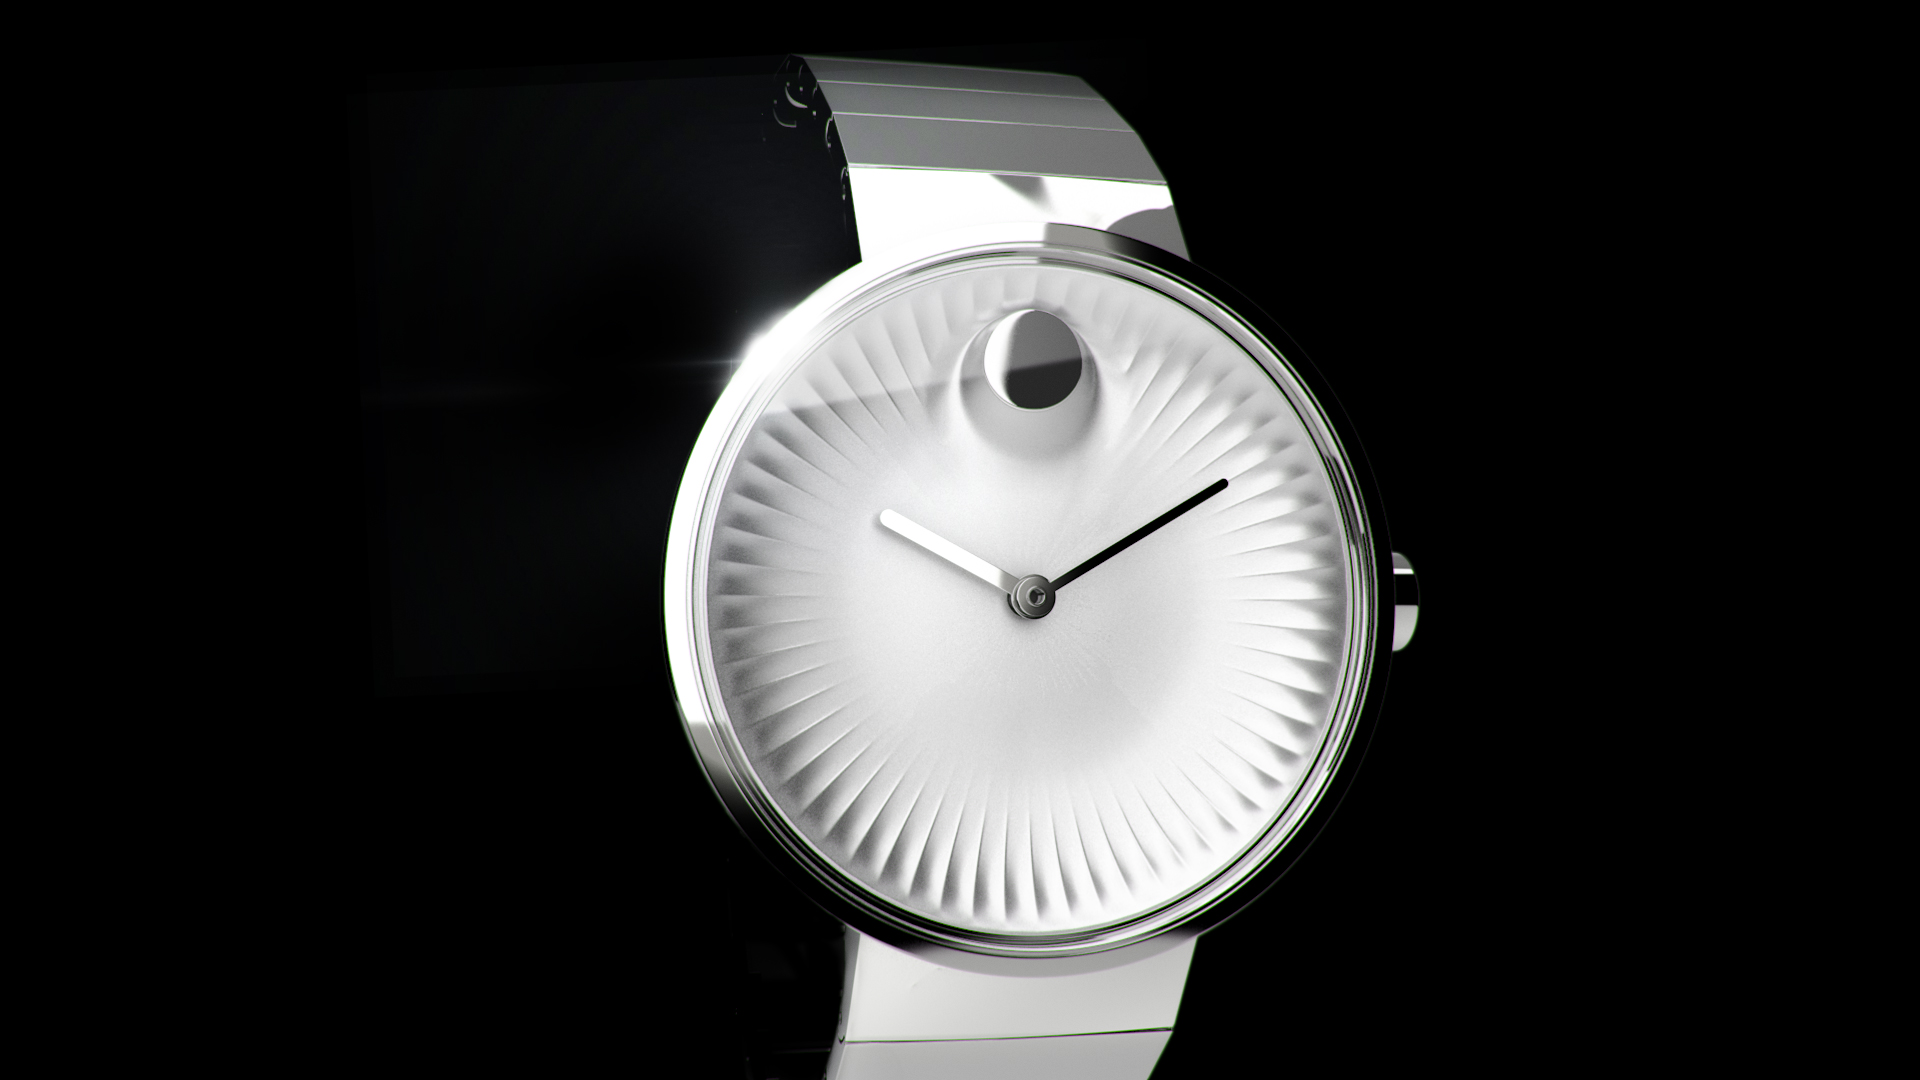 WomensWatch_Edge_Silver0000